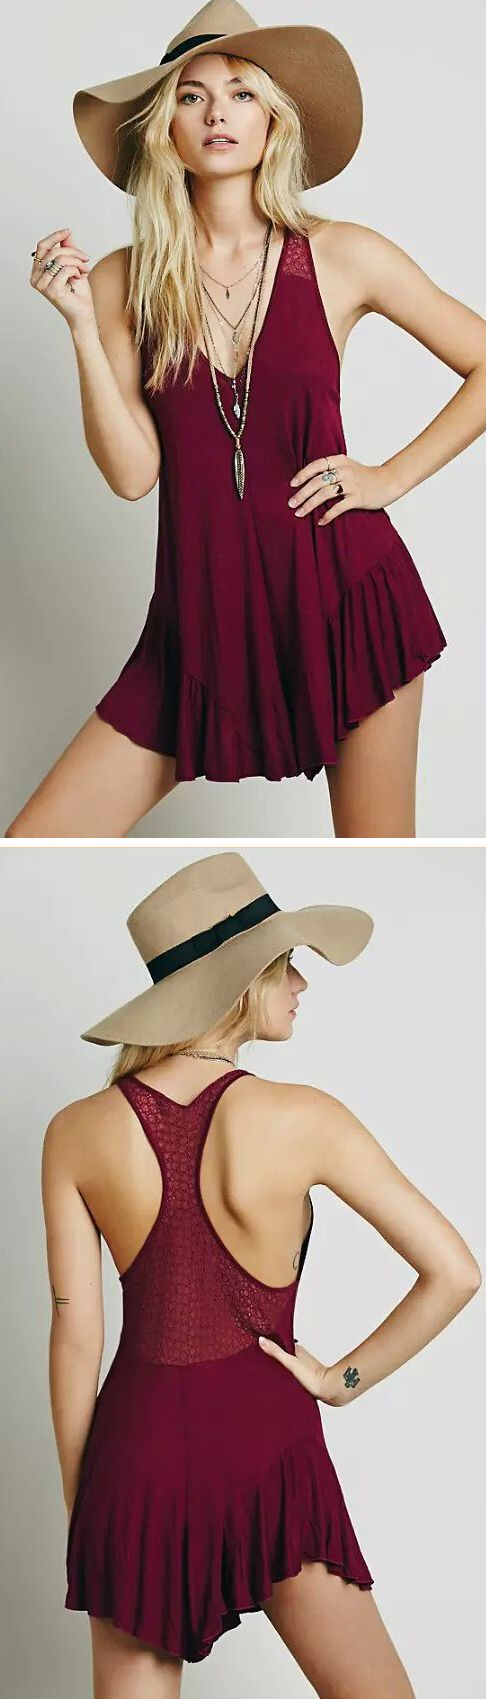 """When last-minute dinner plans ensue, this is the romper to have on hand to save you from the age-old """"what will I wear?"""" It will show your sex appeal and elegance completely. Pick it up from OASAP!"""